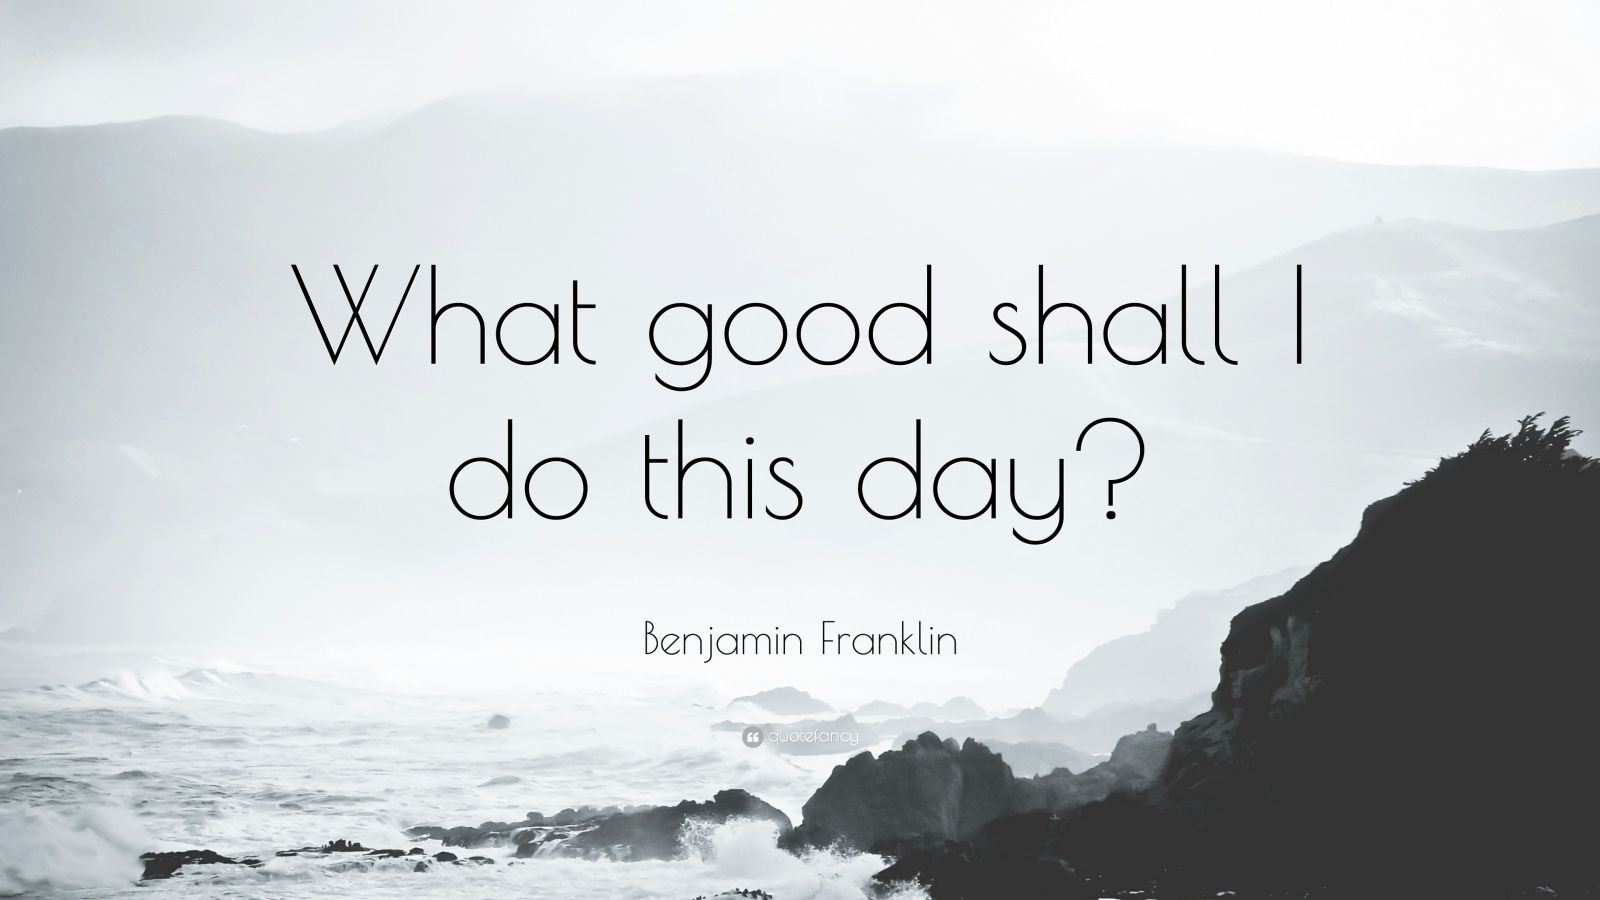 Benjamin Franklin Quotes Wallpaper Benjamin Franklin Quote What Good Shall I Do This Day